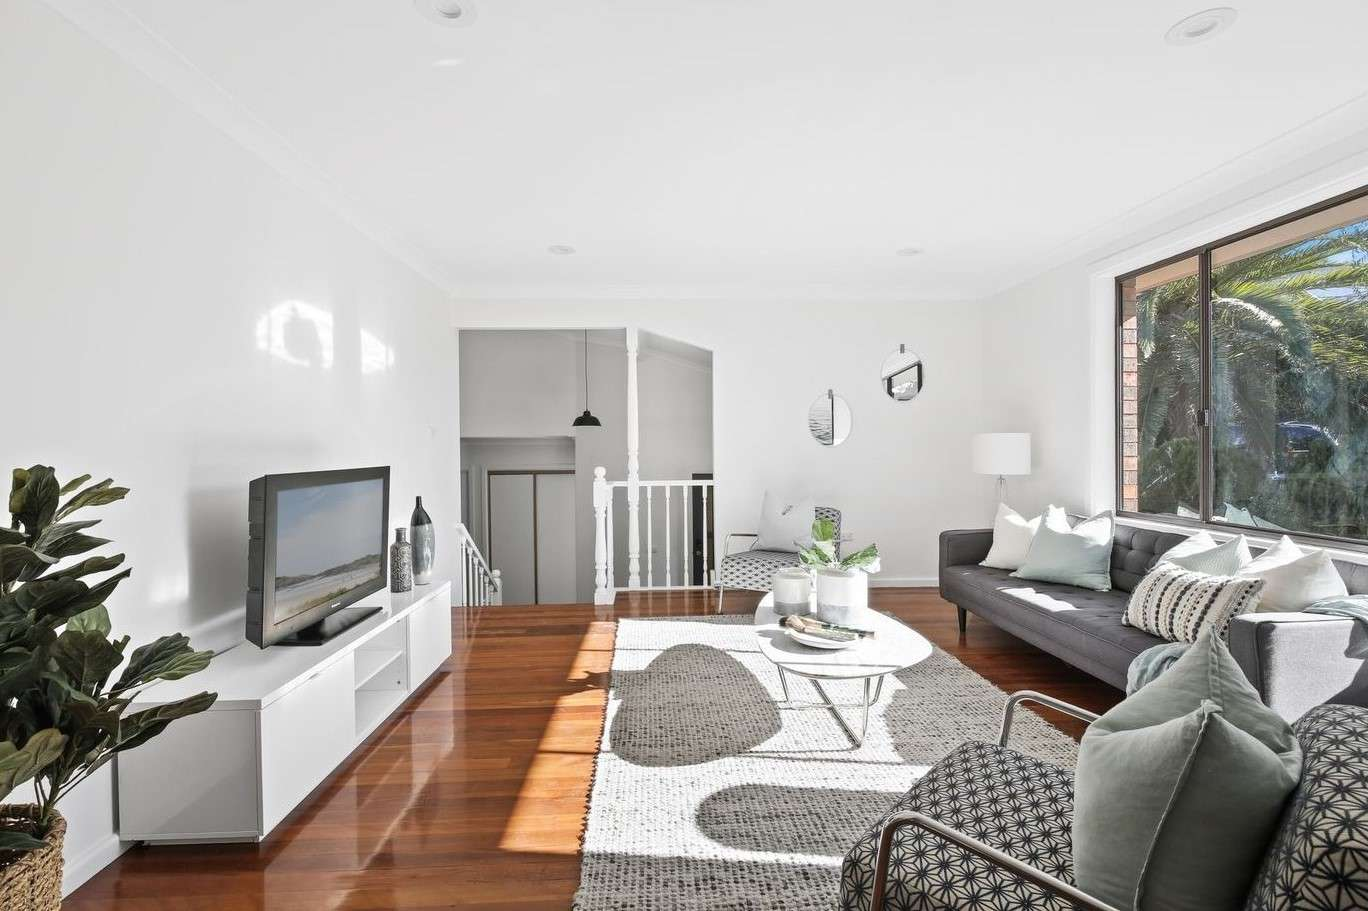 Main view of Homely house listing, 57 Raglan Street, Malabar, NSW 2036